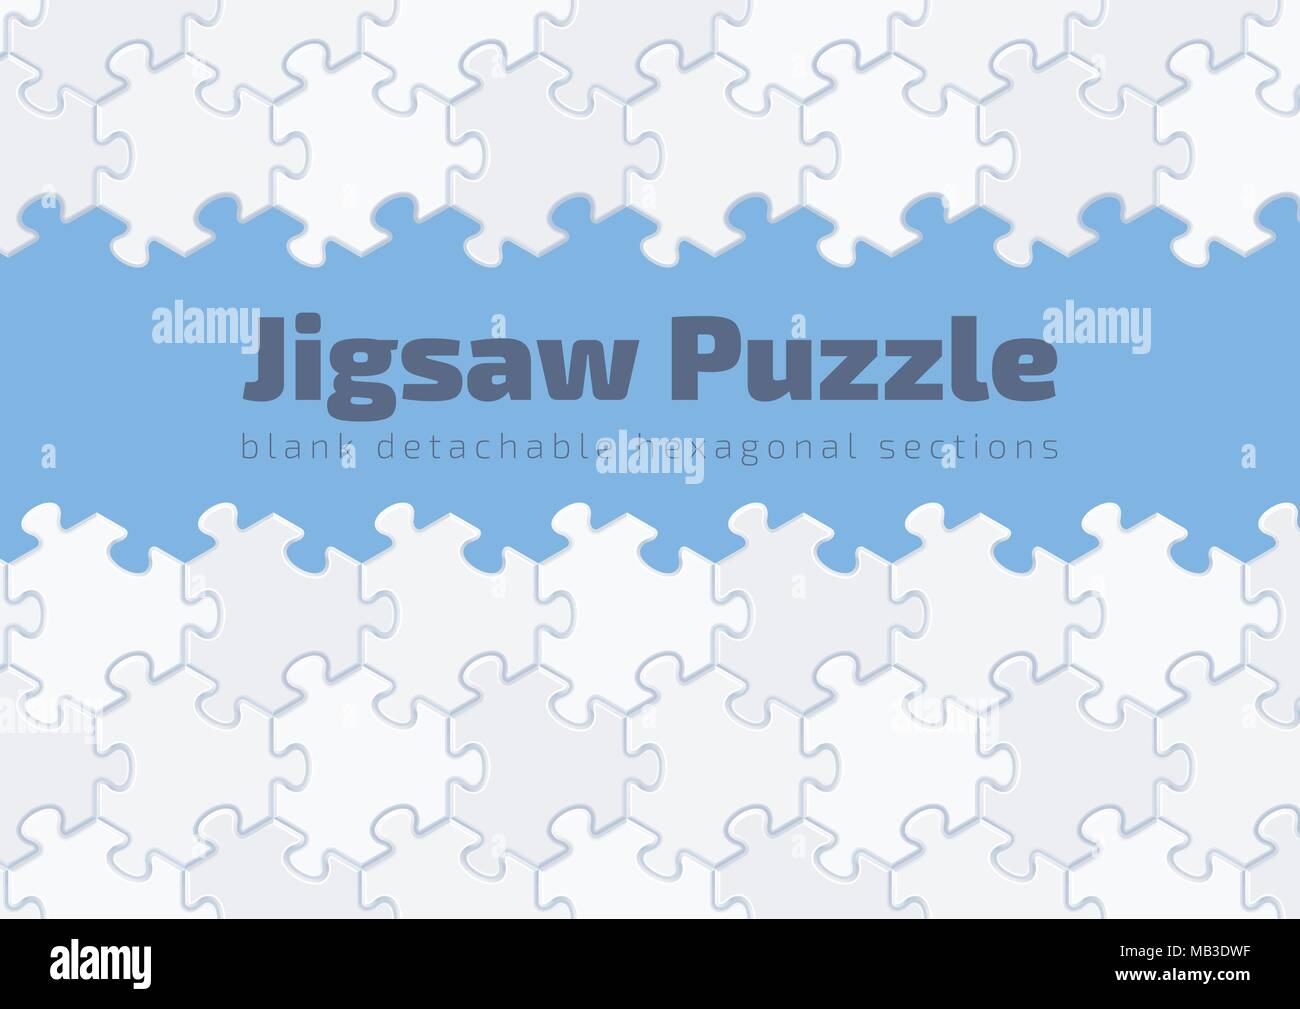 Jigsaw Puzzle Parts Jigsaw Puzzle Stock Photos & Jigsaw Puzzle Parts ...